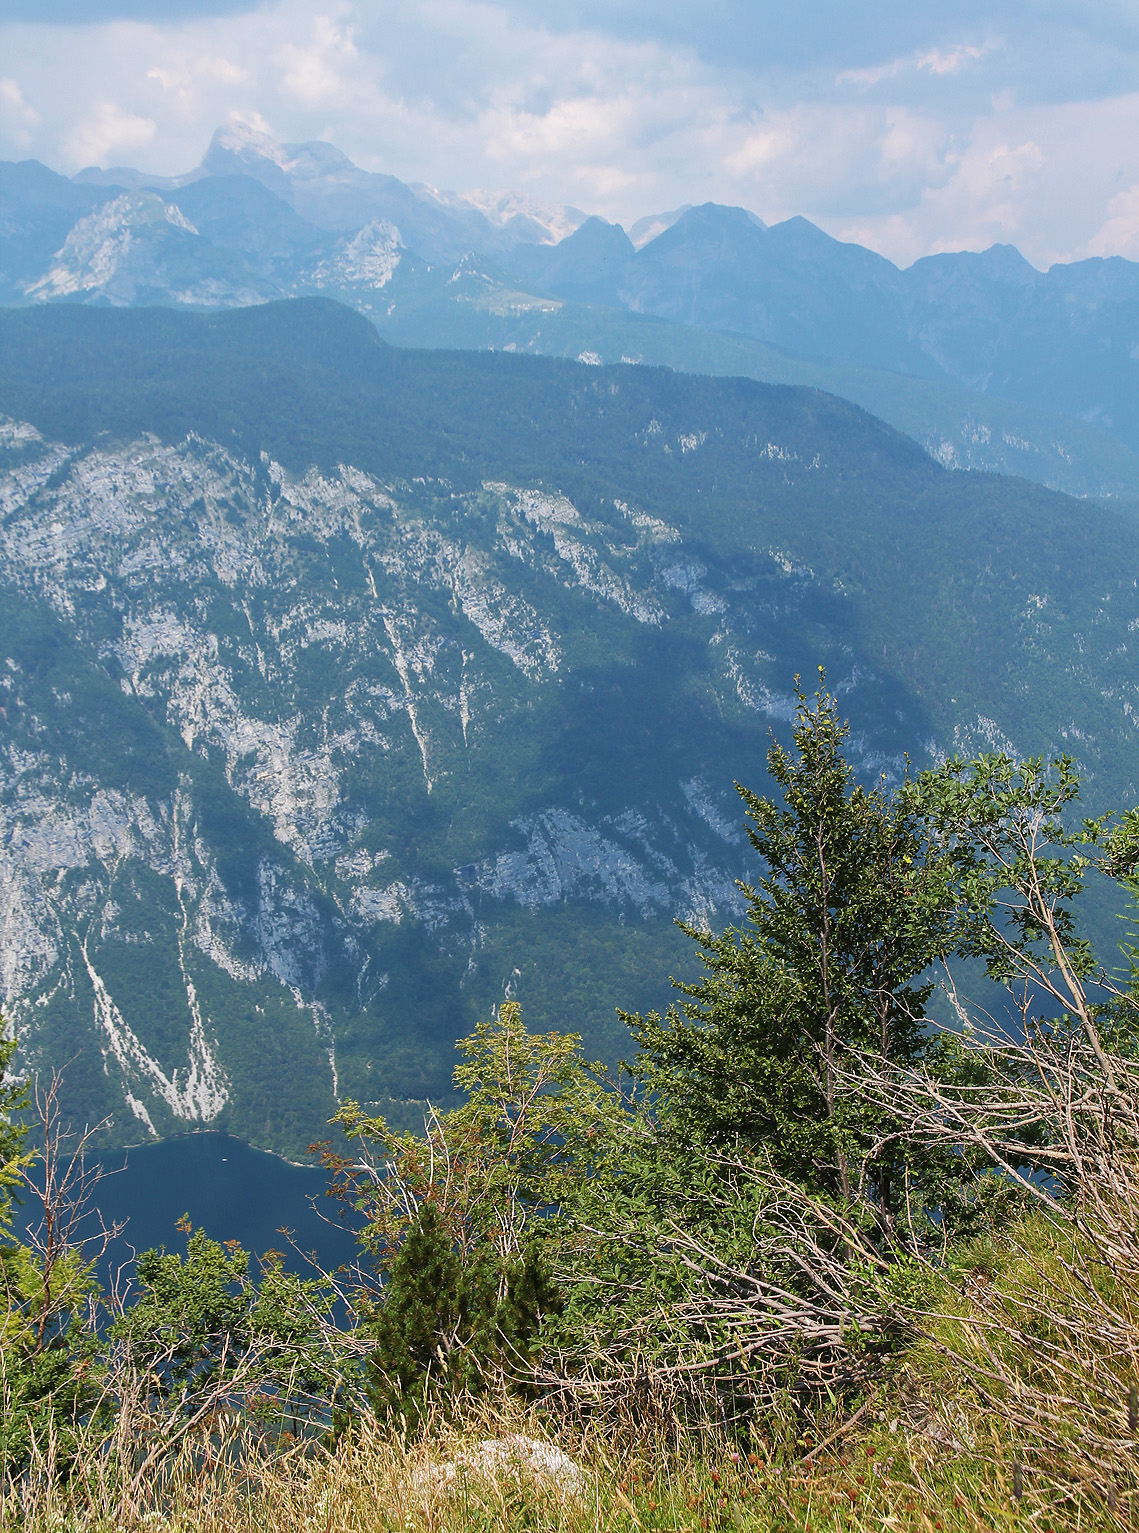 View from 1540m up the mountain, featuring the lake and Mount Triglav.